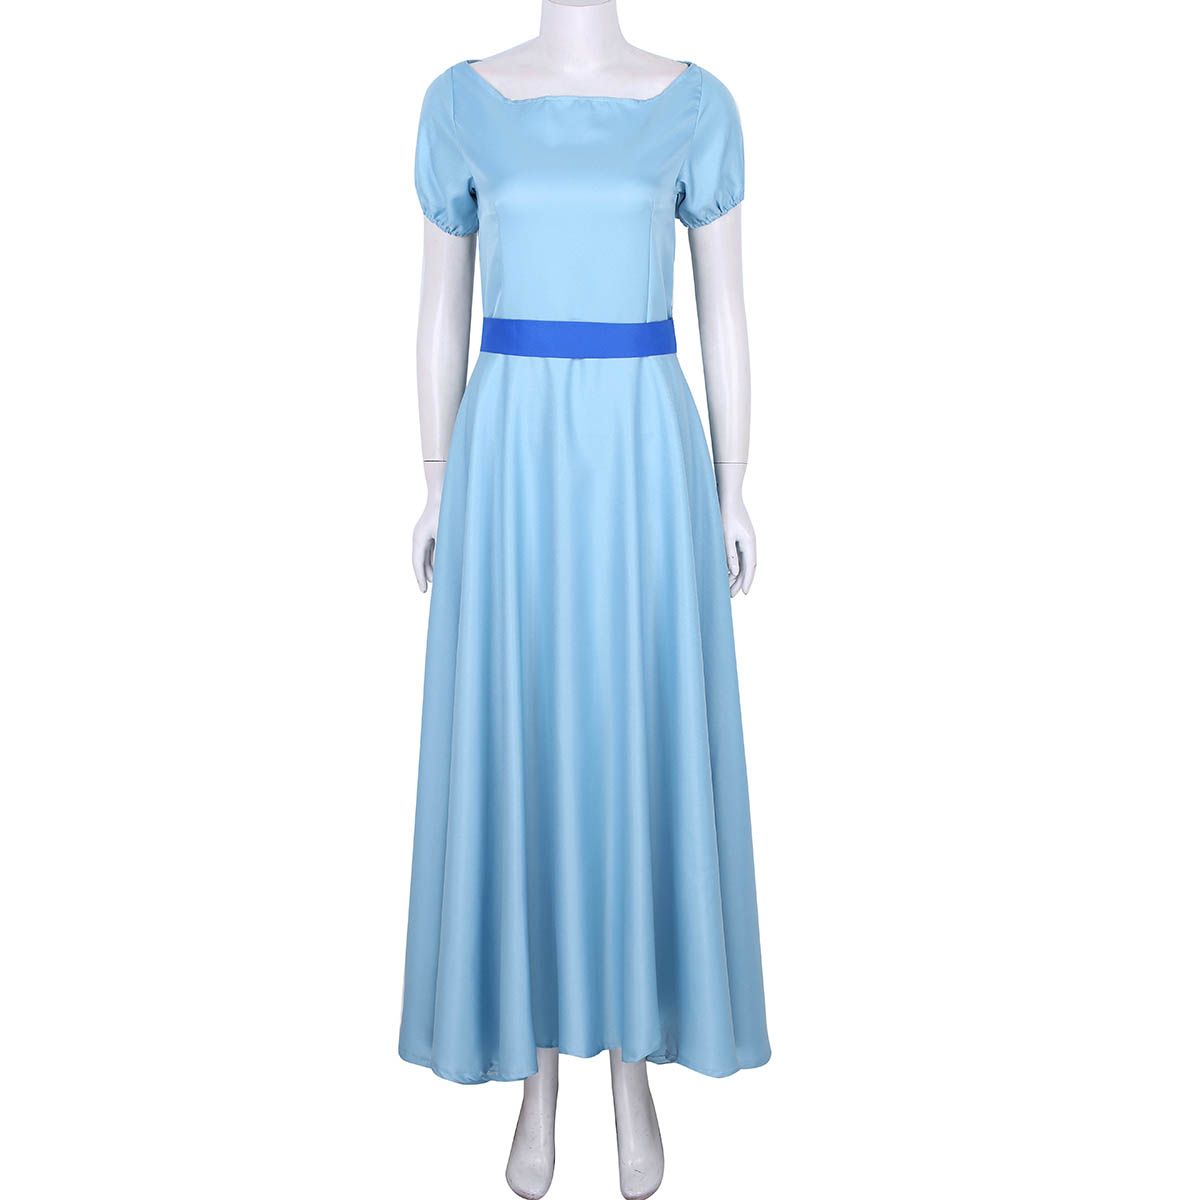 Image 5 - Women Halloween Cosplay Costume Wendy Dress Boat Neck Short Puff Sleeves Princess Party Fancy Maxi Dress with Headwear and Belt-in Movie & TV costumes from Novelty & Special Use